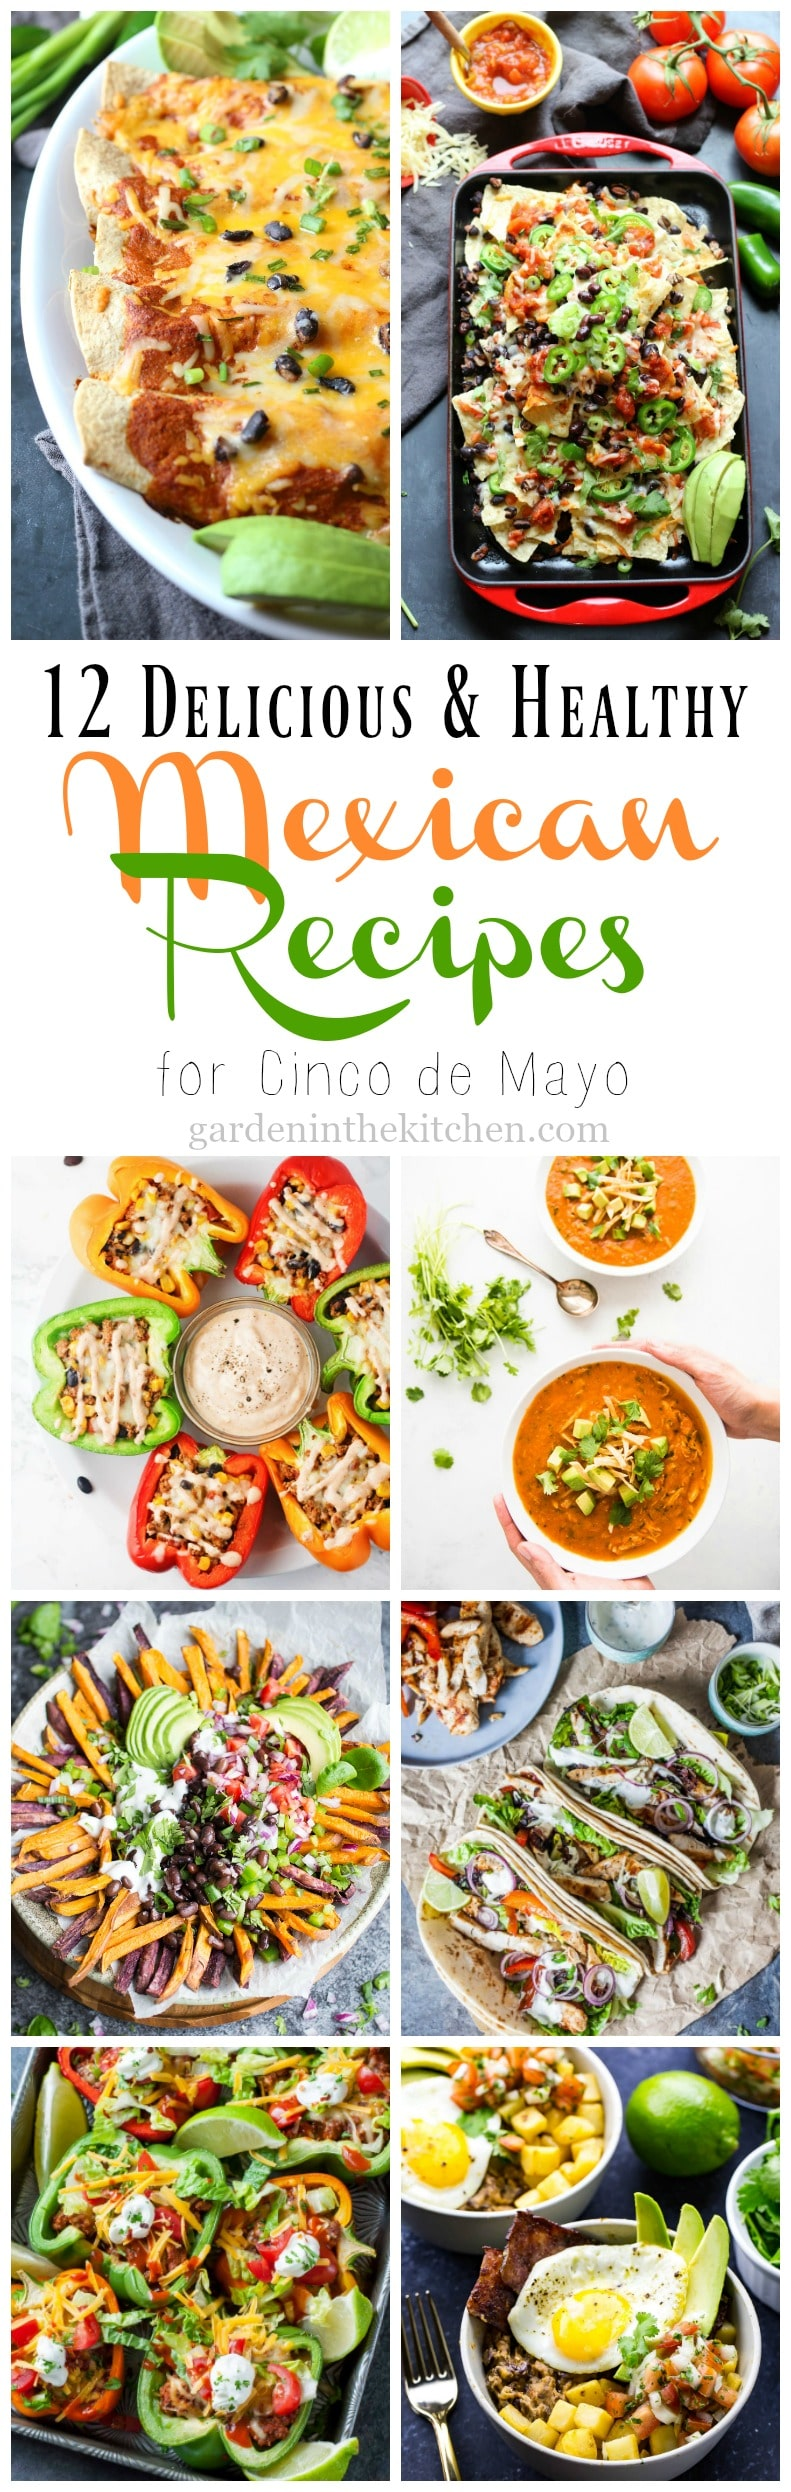 12 Delicious and Healthy Mexican Recipes for Cinco de Mayo